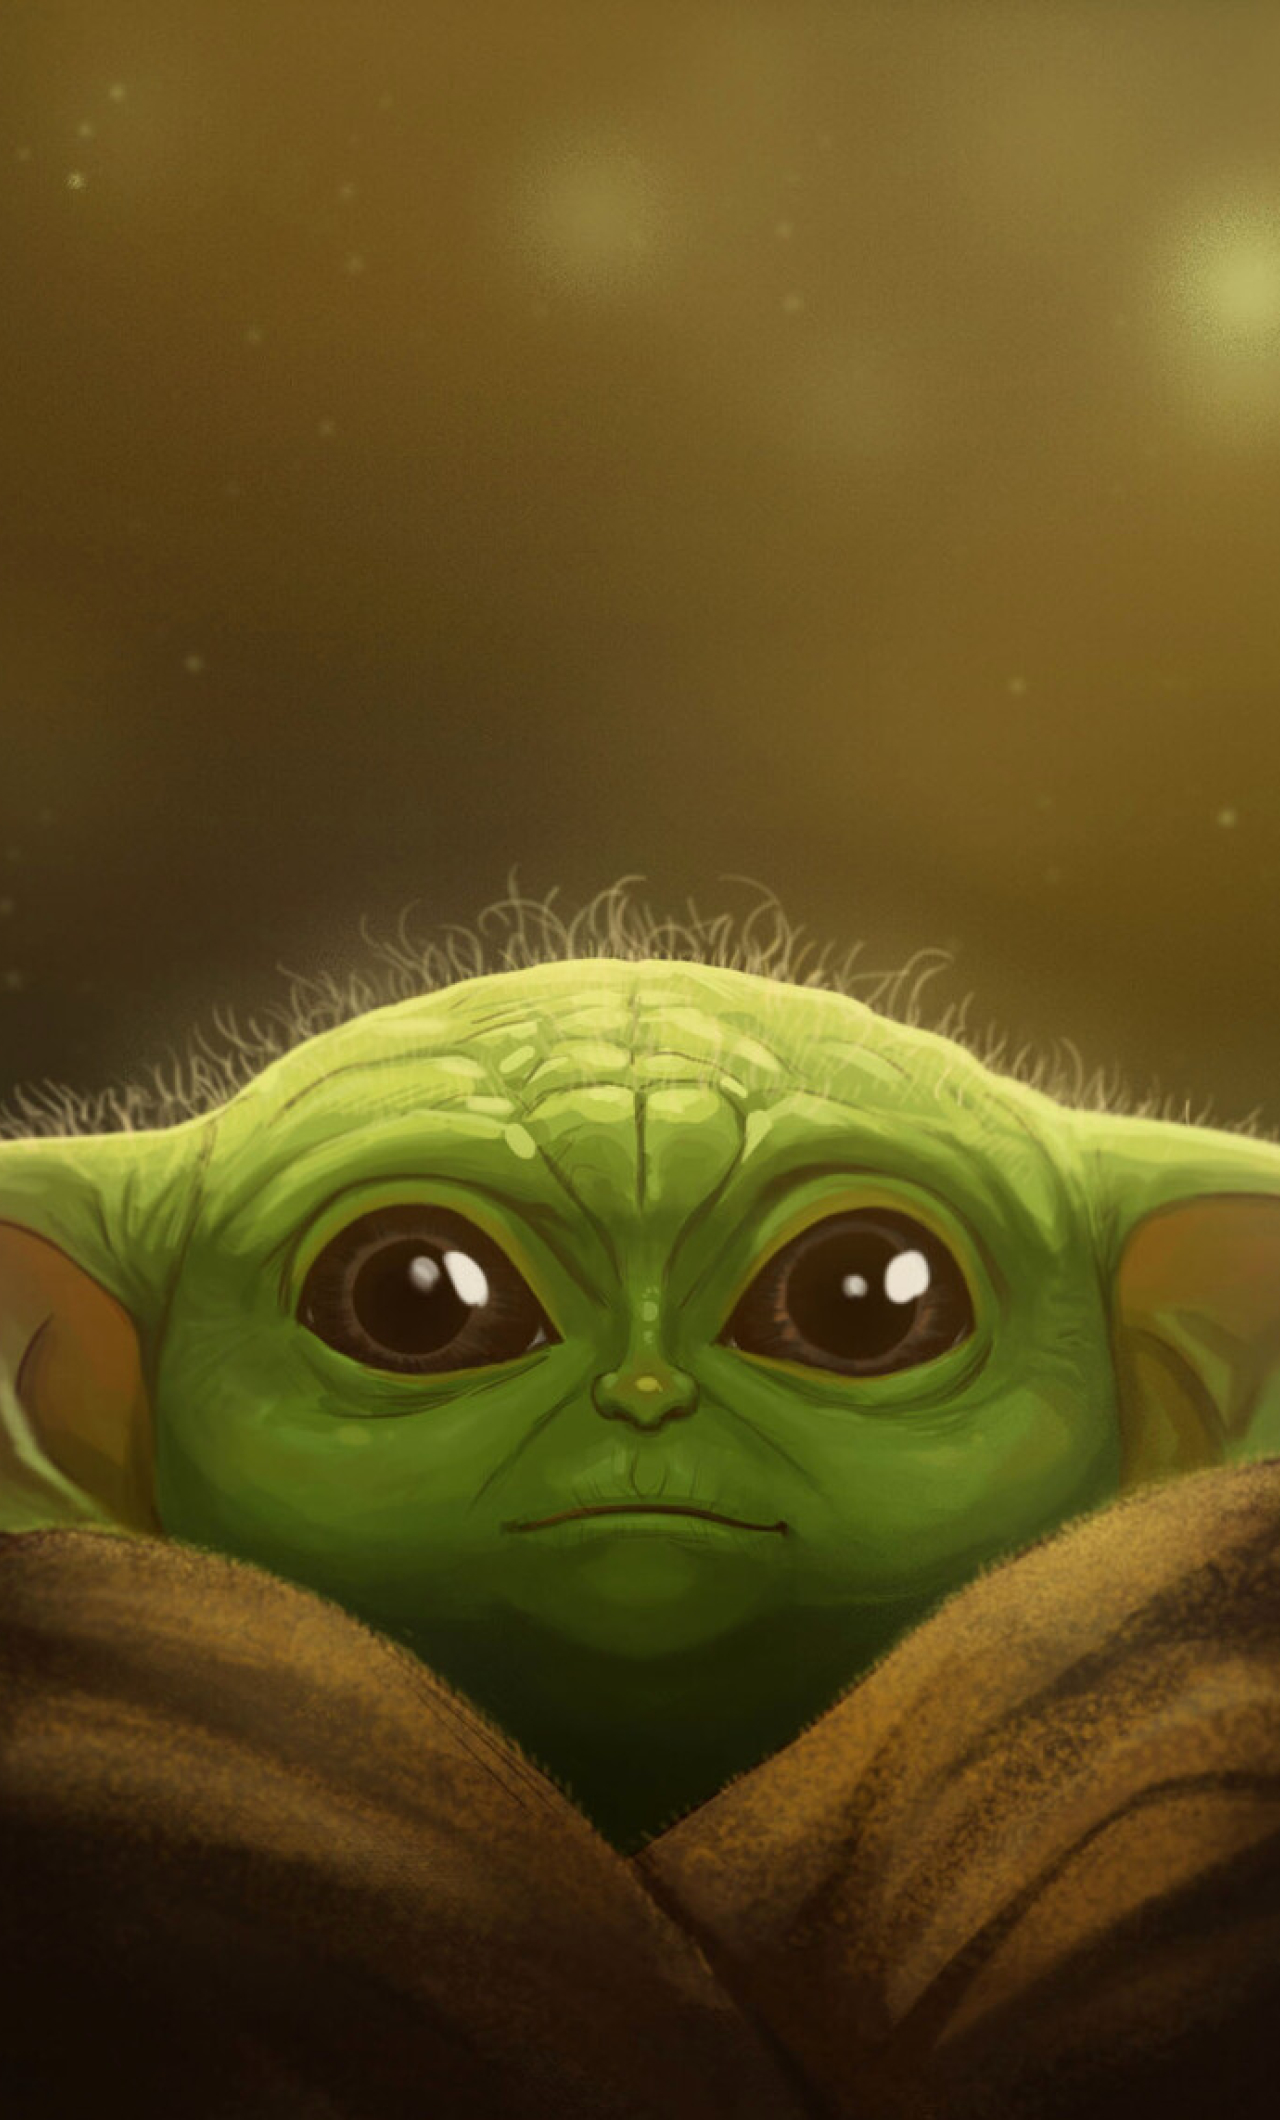 1280x2120 Baby Yoda Fanart 2019 Iphone 6 Plus Wallpaper Hd Artist 4k Wallpapers Images Photos And Background